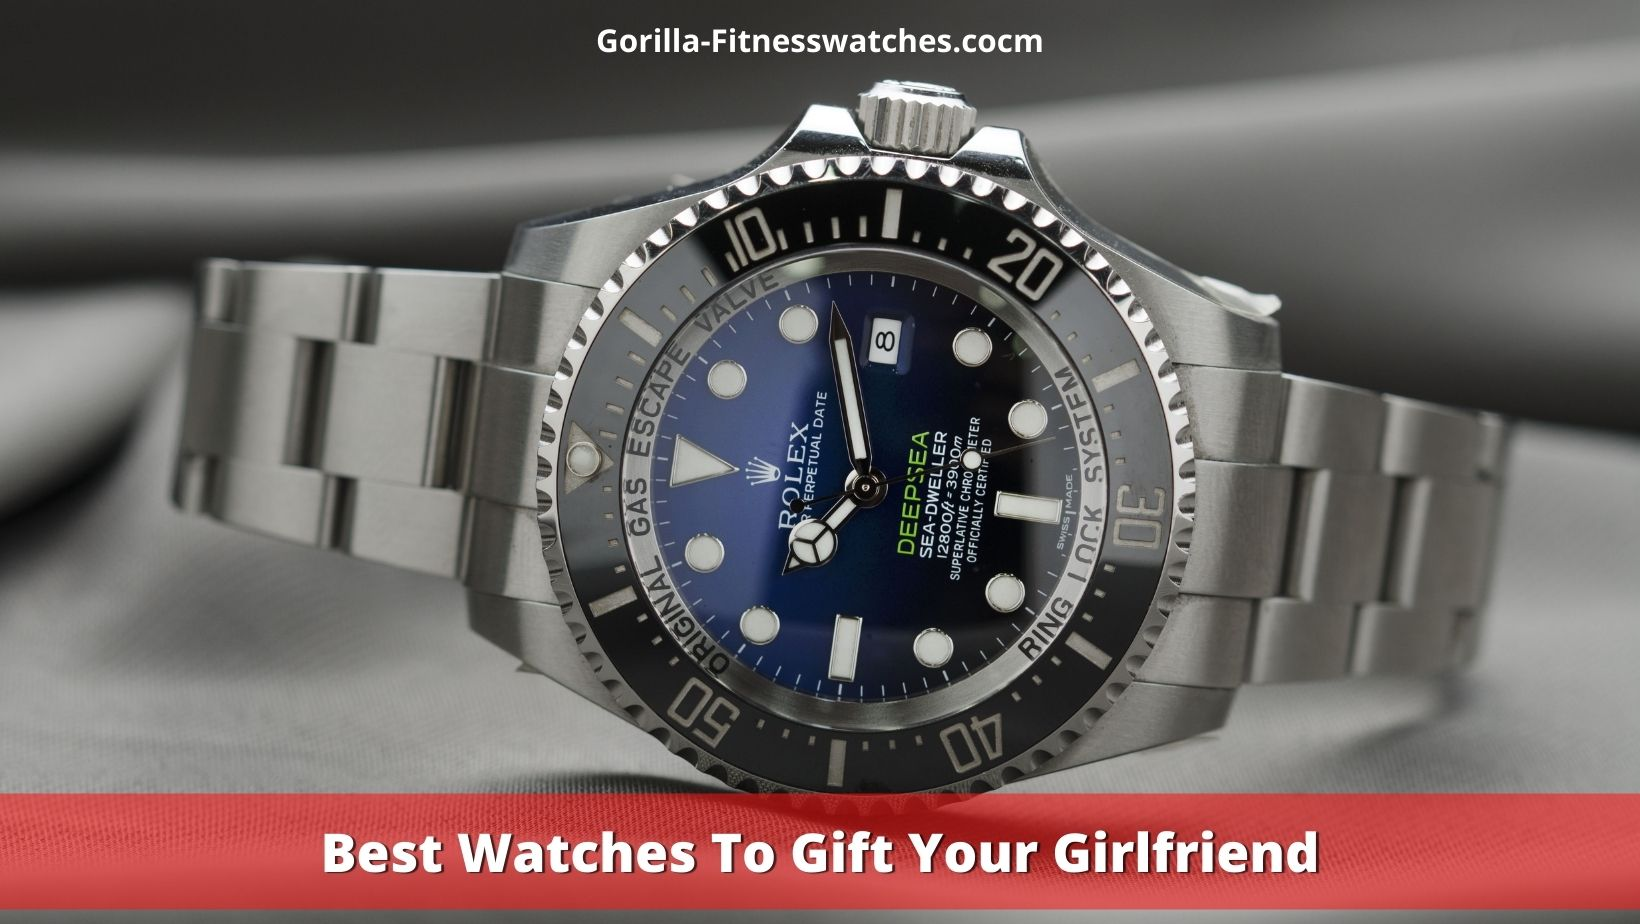 Best Watches To Gift Your Girlfriend